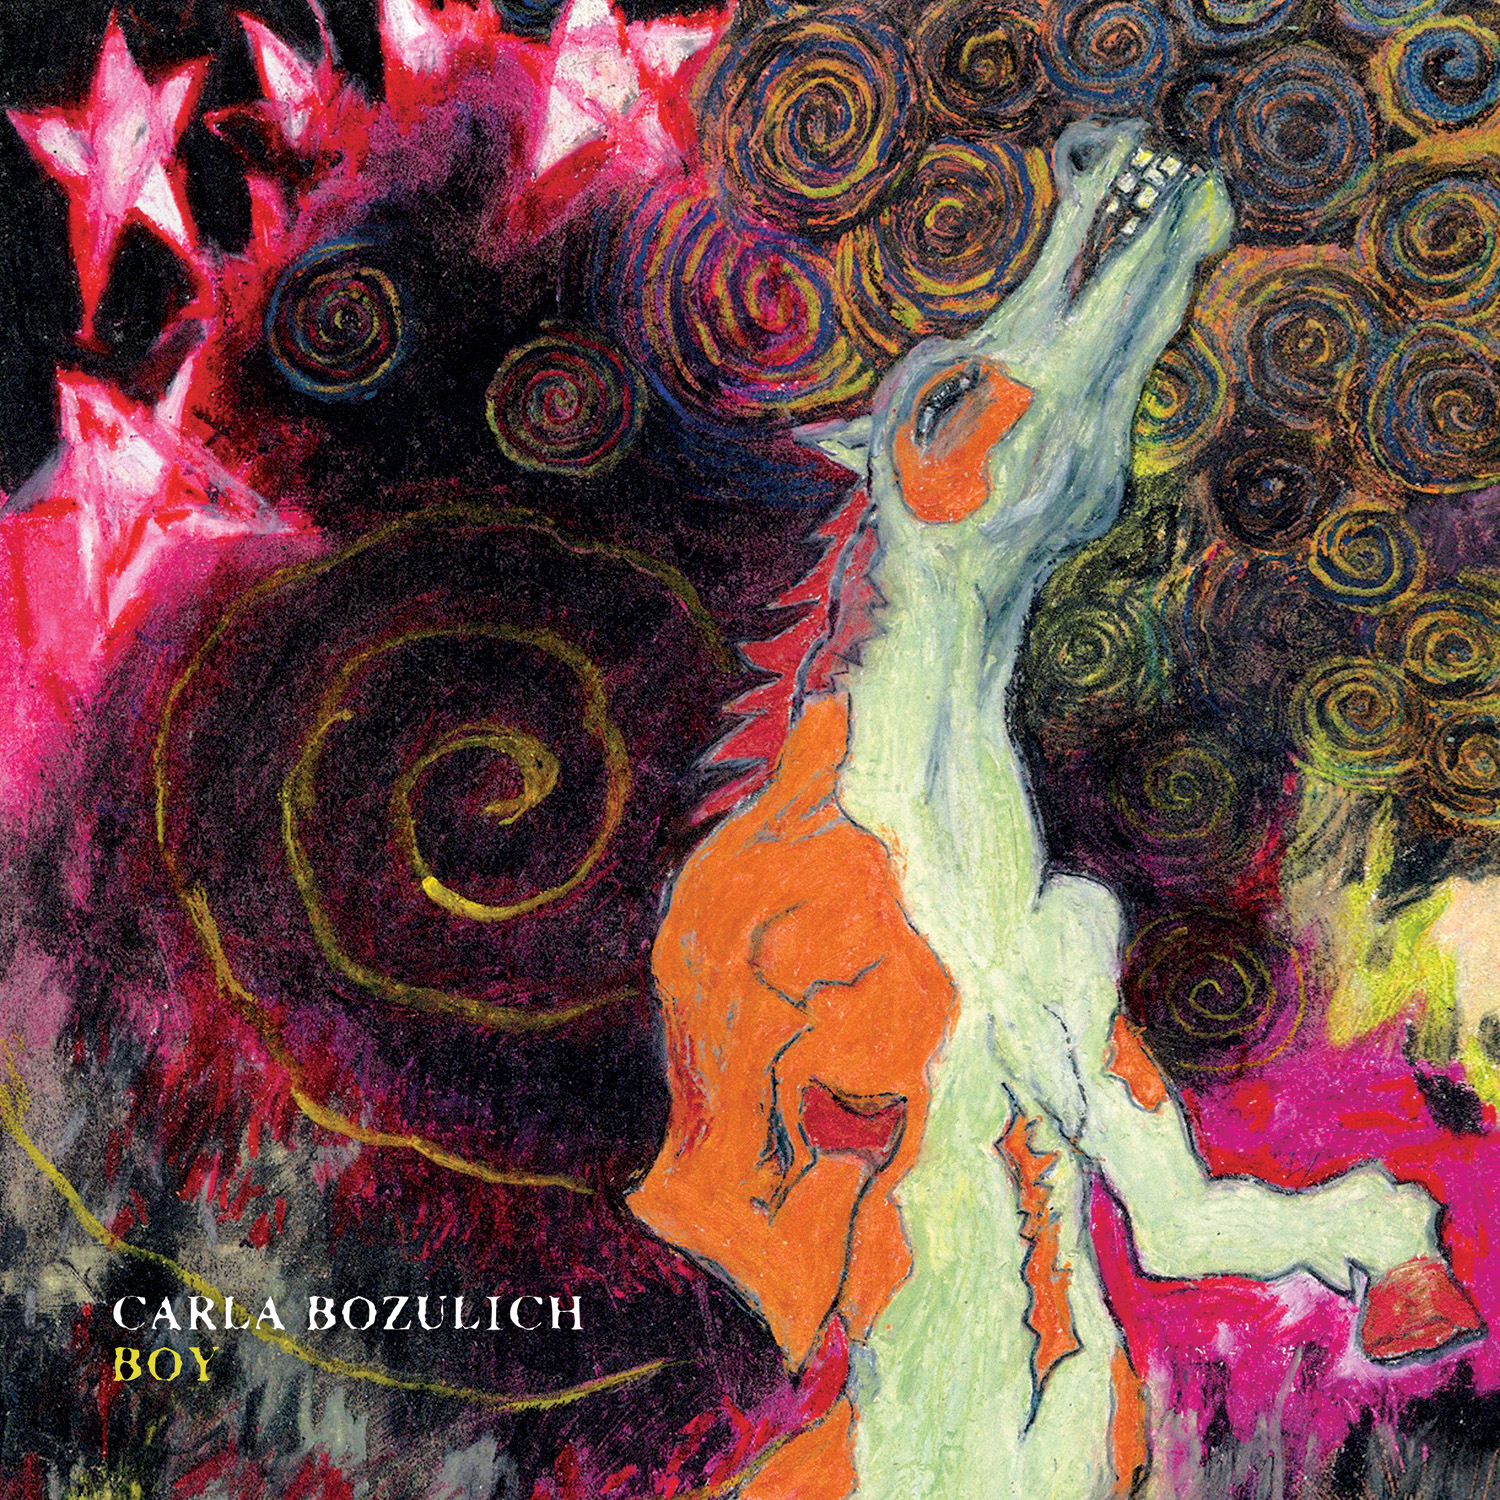 boy_cover_carla_bozulich